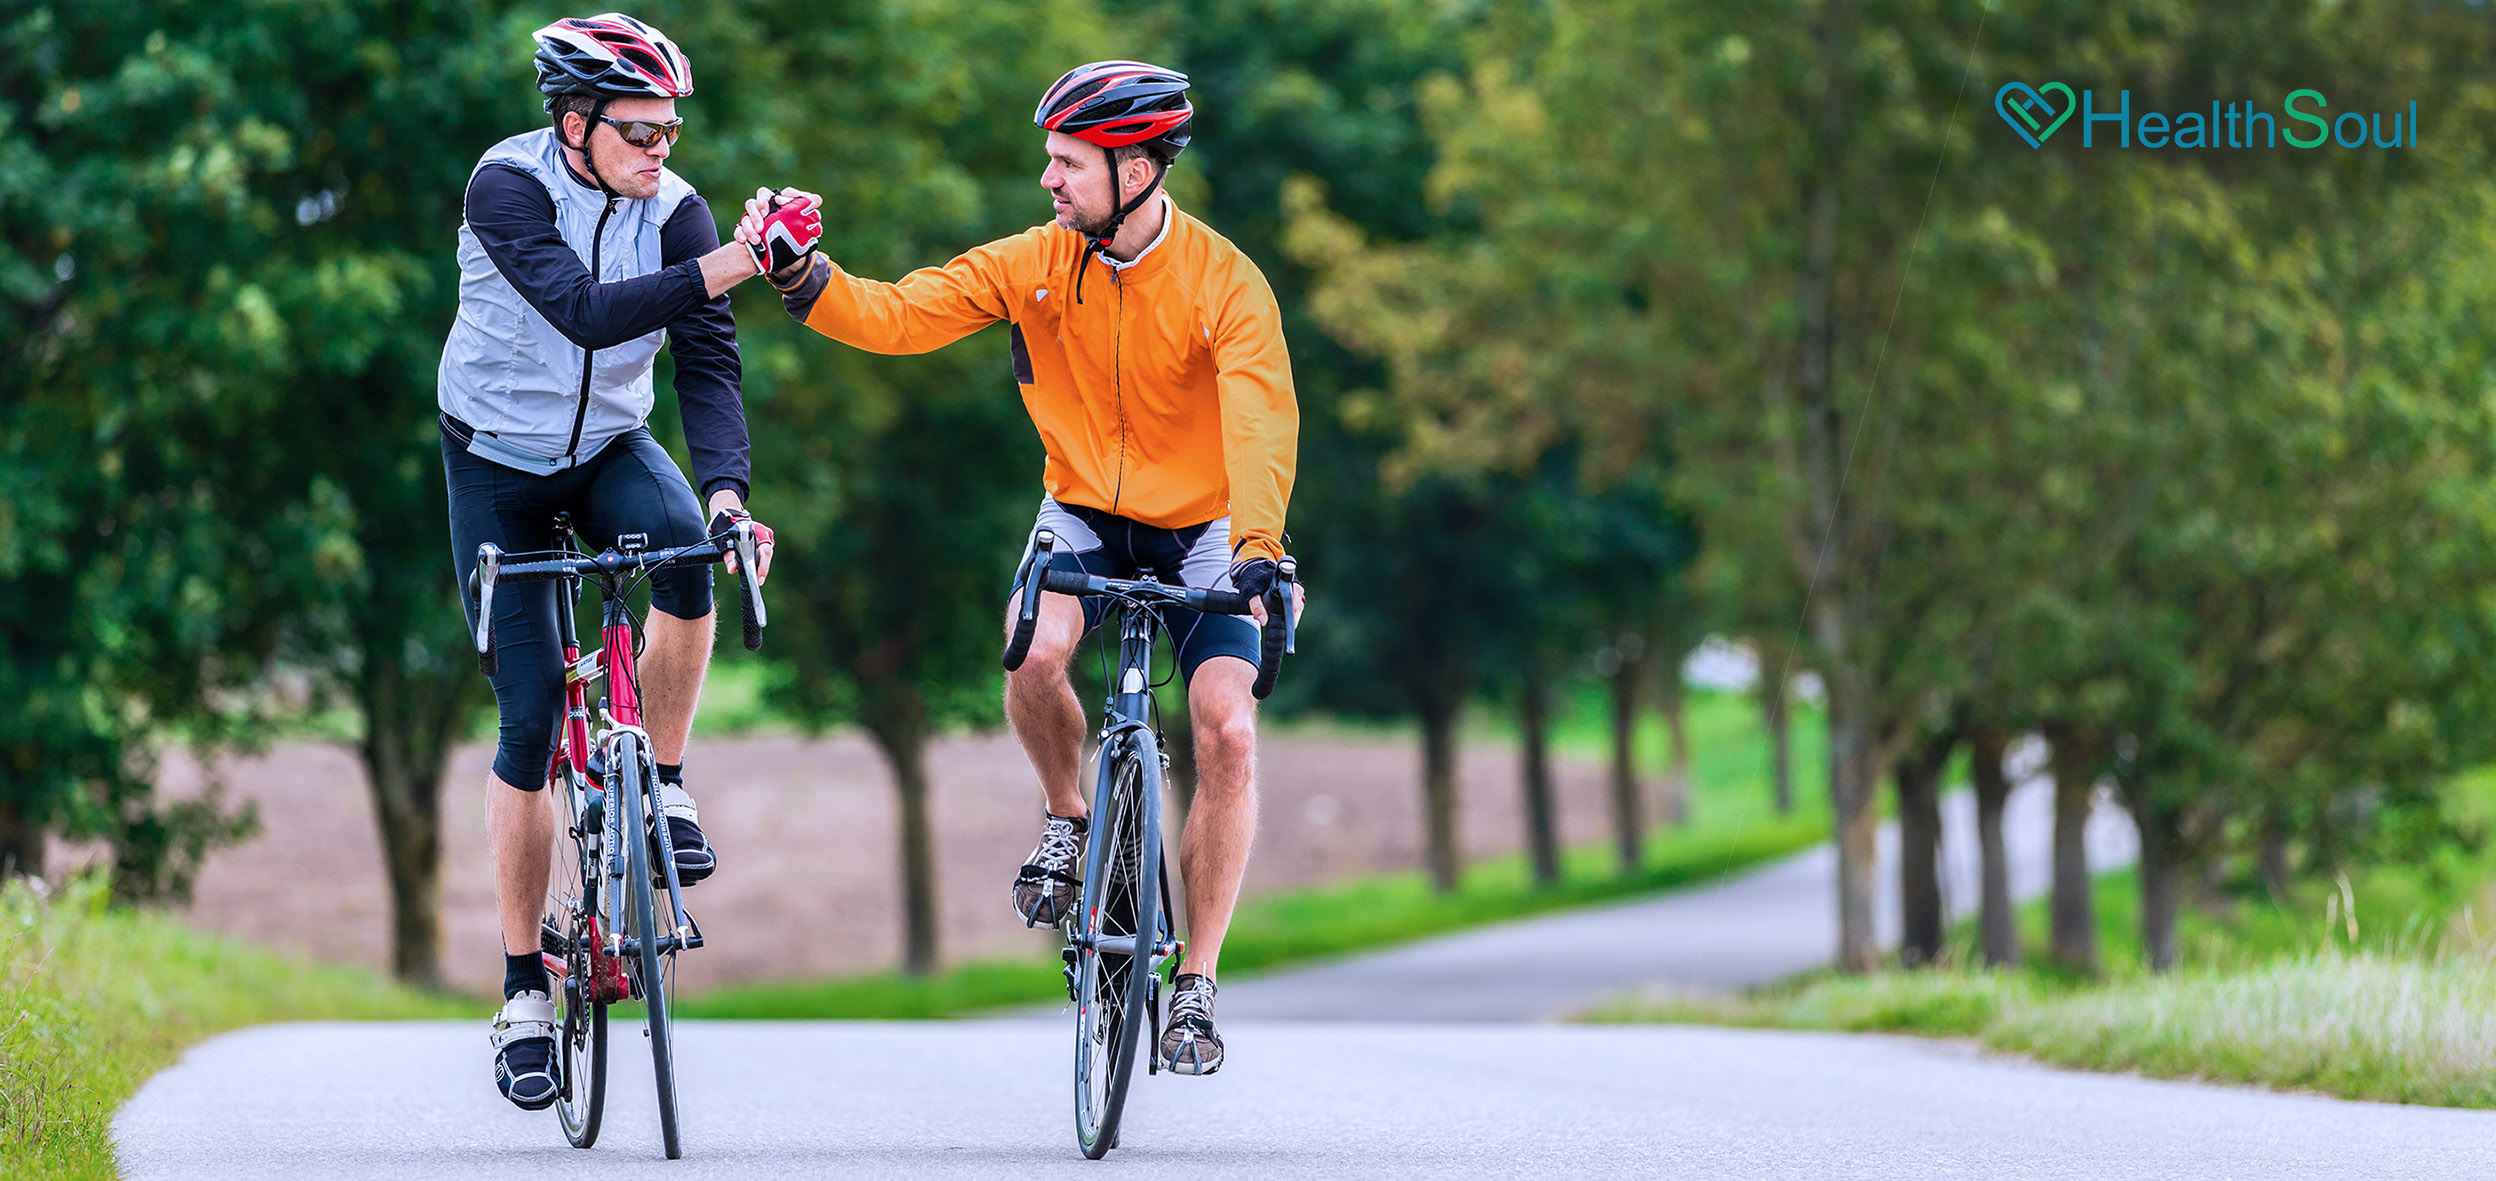 6 Useful Pieces Of Advice To Enjoy Your Cycling Experience Safely | HealthSoul